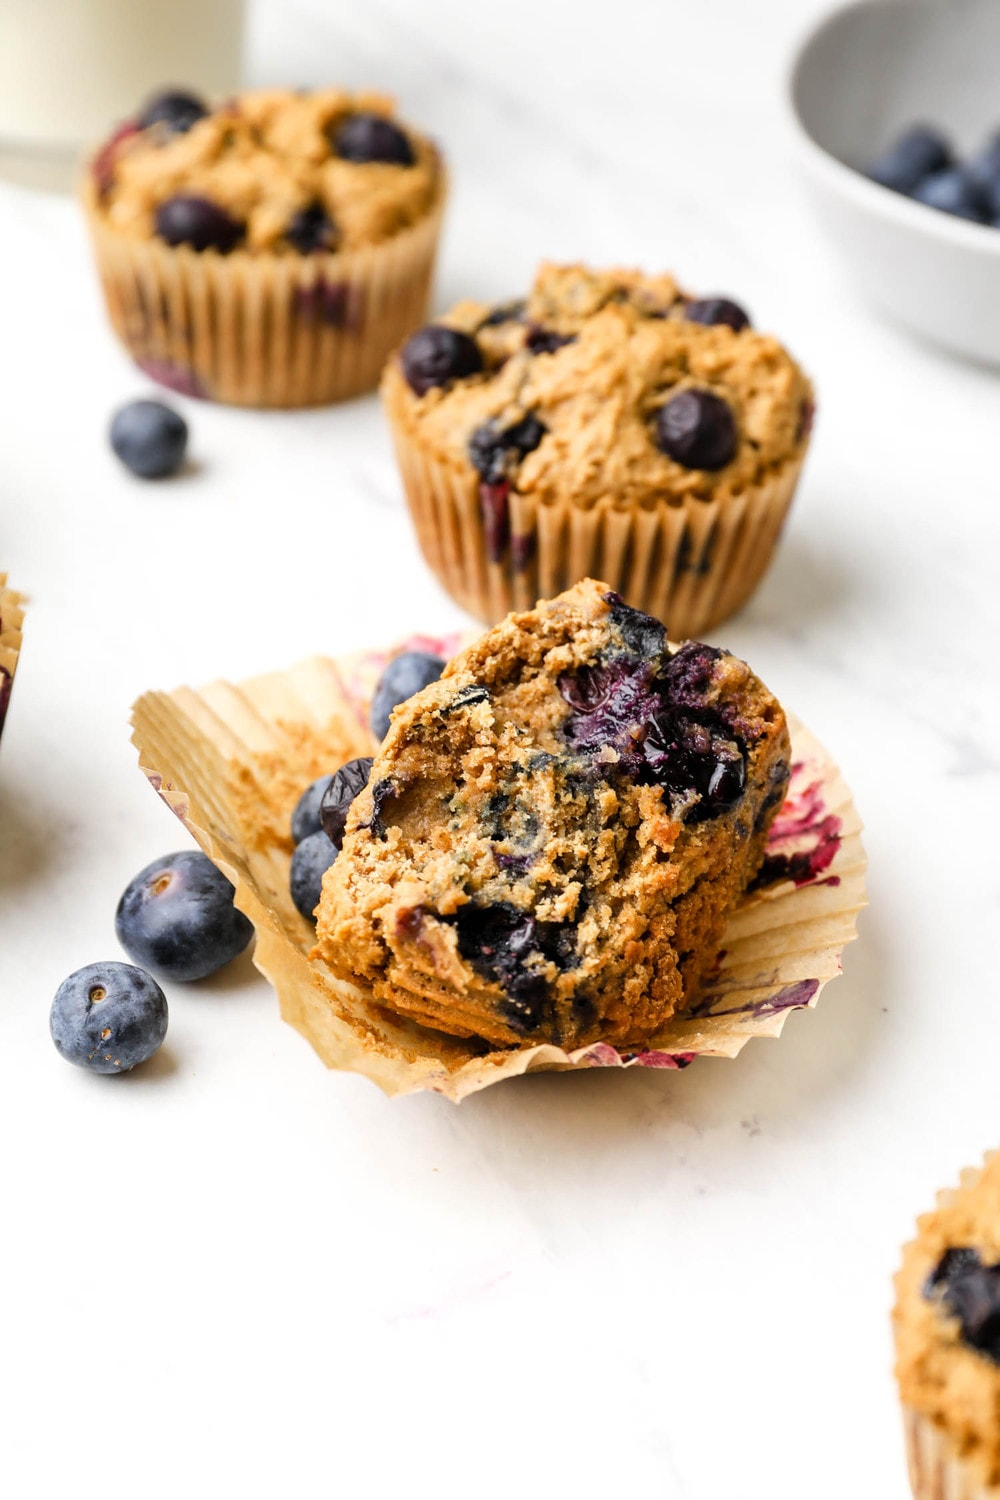 A bite out of a Gluten Free Blueberry Muffins with blueberries.